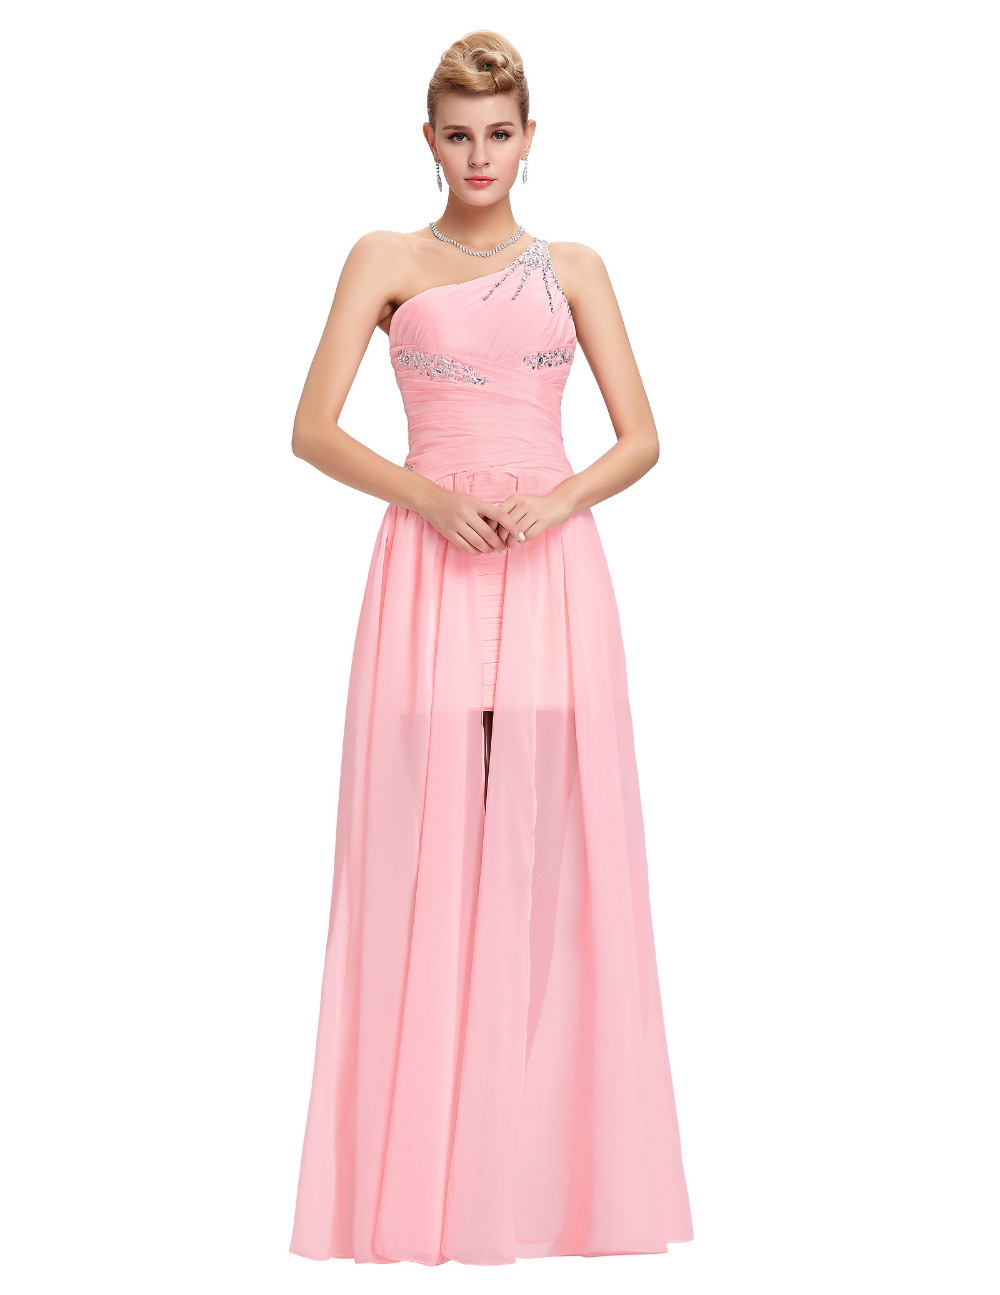 Elegant One Shoulder Pink Short Front Long Back Chiffon Bridesmaid Dress